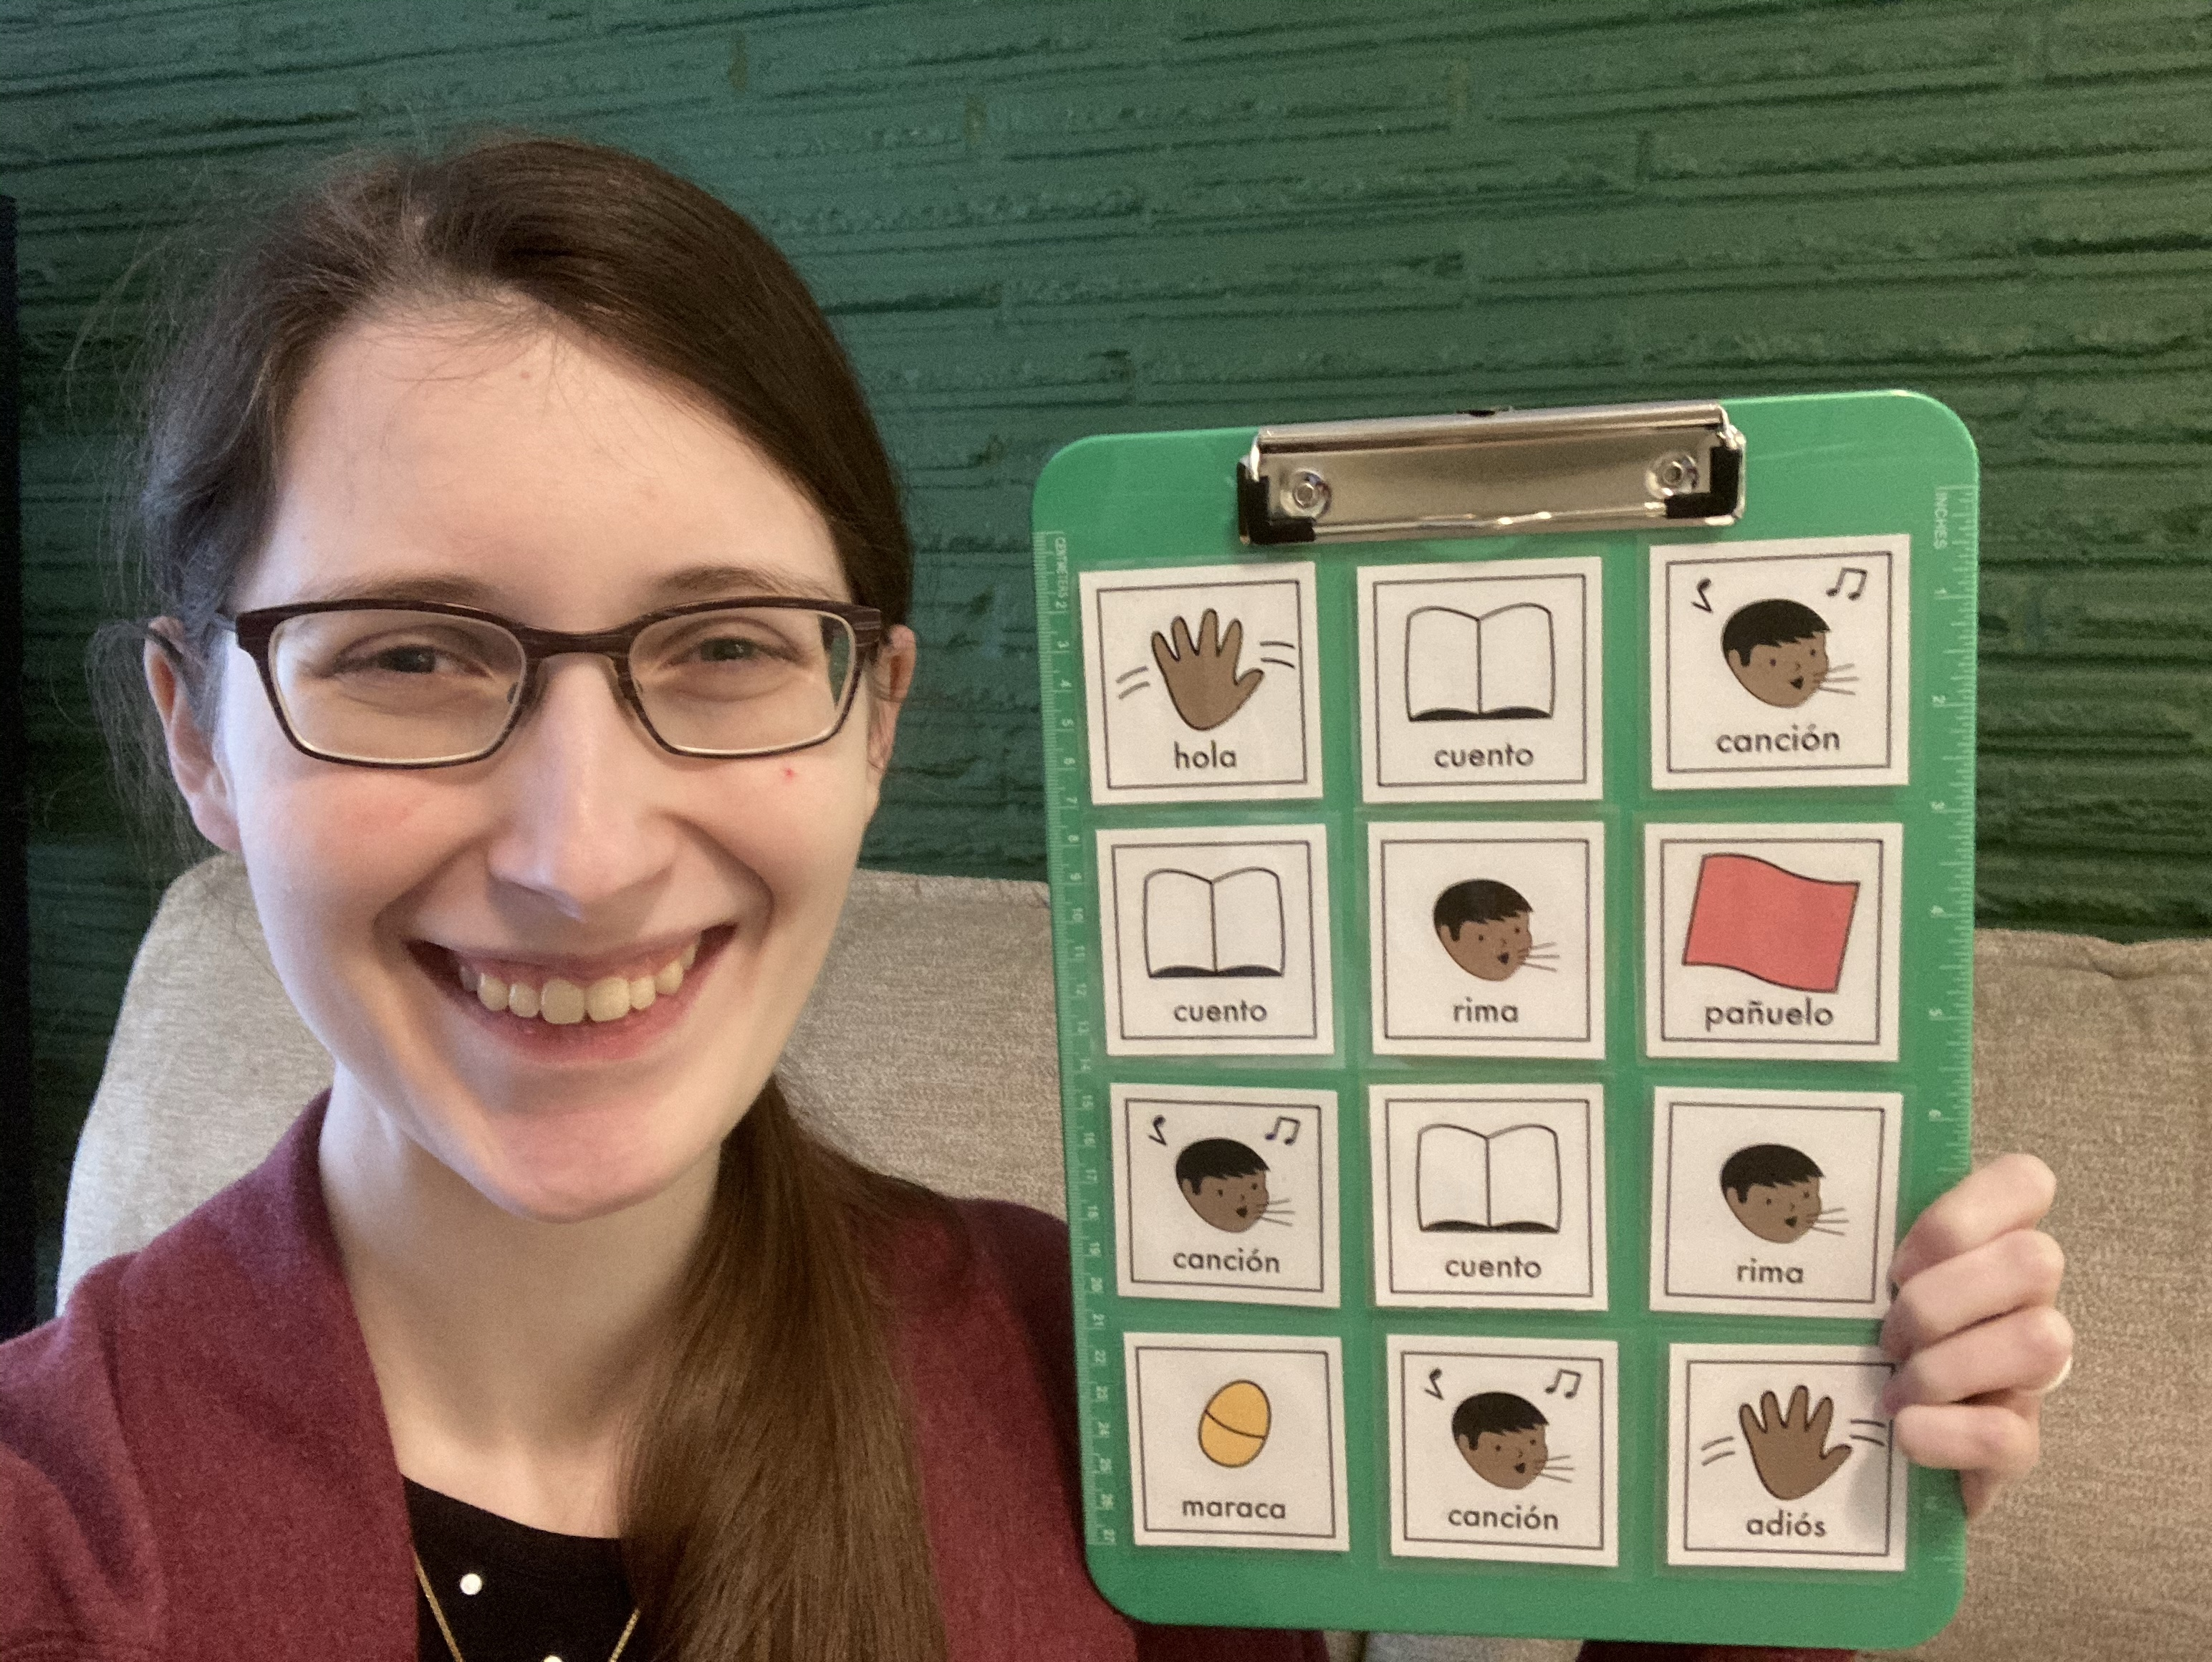 Photo of a women holding a clipboard with visual storytime schedule icons for hola, cuento, canción, rima, pañuelo, maraca, and adiós.